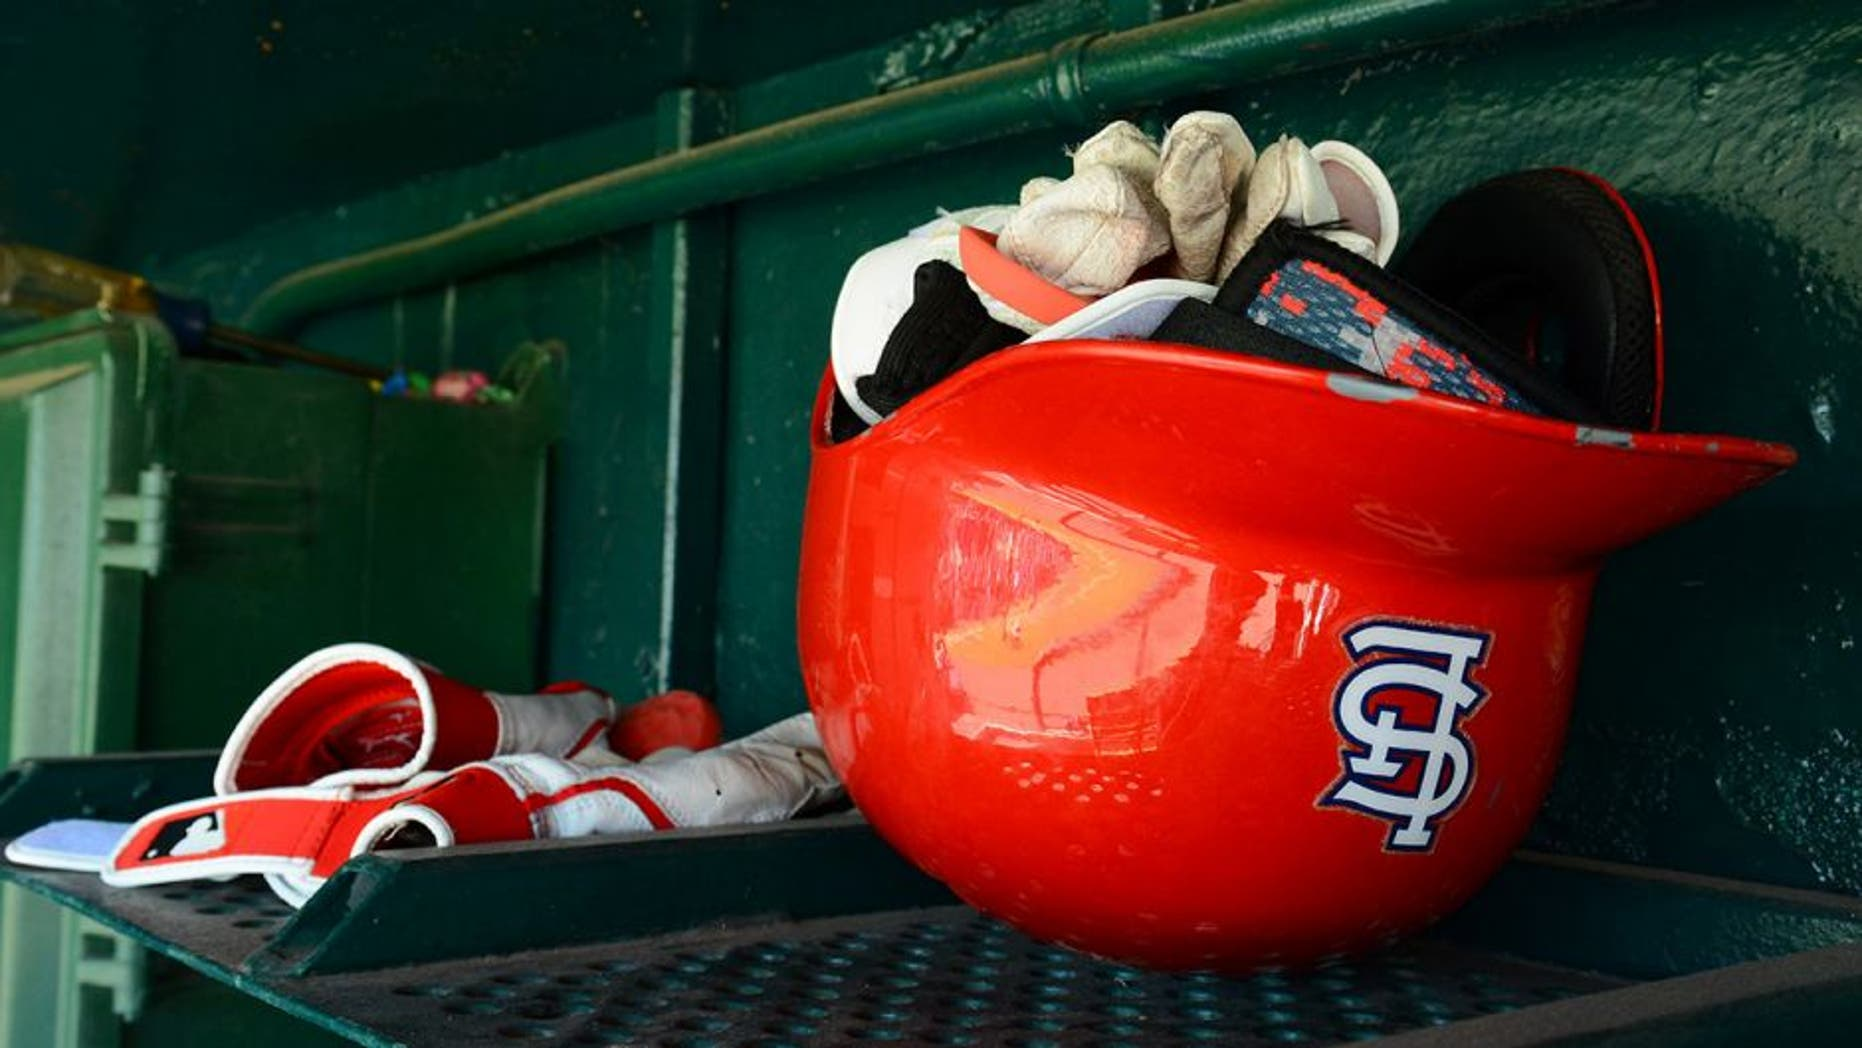 LAKELAND, FL - MARCH 03: A detailed view of a St. Louis Cardinals batting helmet sitting in the dugout prior to the spring training game against the Detroit Tigers at Joker Marchant Stadium on March 3, 2014 in Lakeland, Florida. The Tigers defeated the Cardinals 8-5. (Photo by Mark Cunningham/MLB Photos via Getty Images)